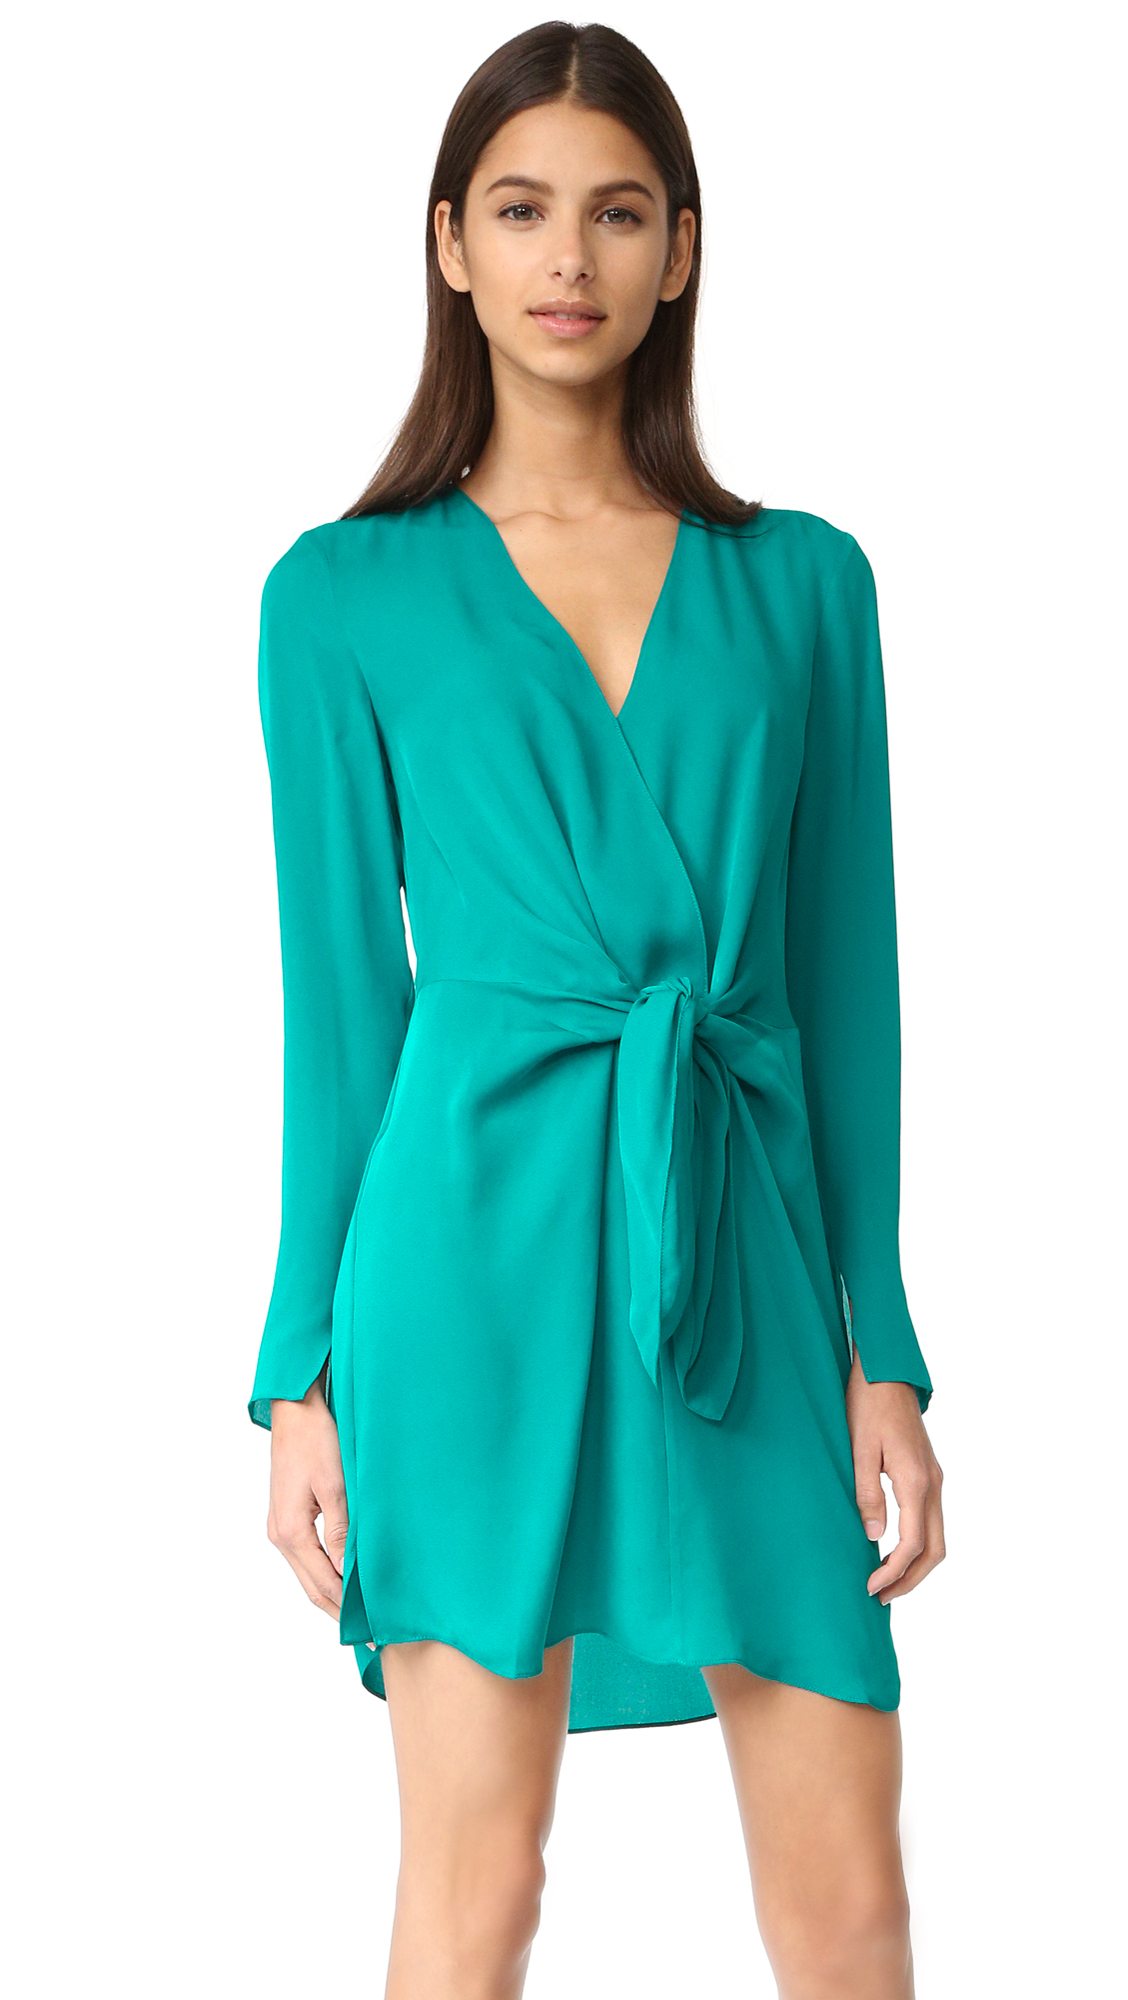 3.1 Phillip Lim Front Knot Dress - Turquoise at Shopbop